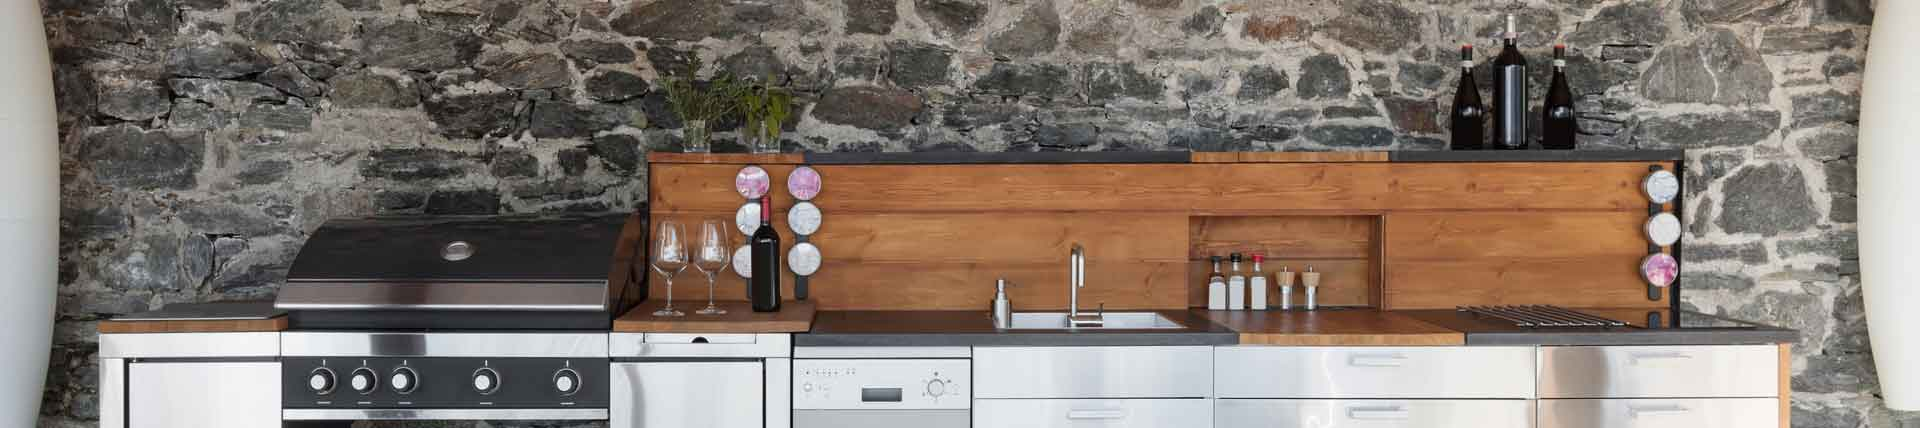 Outdoor Kitchens & Plumbing